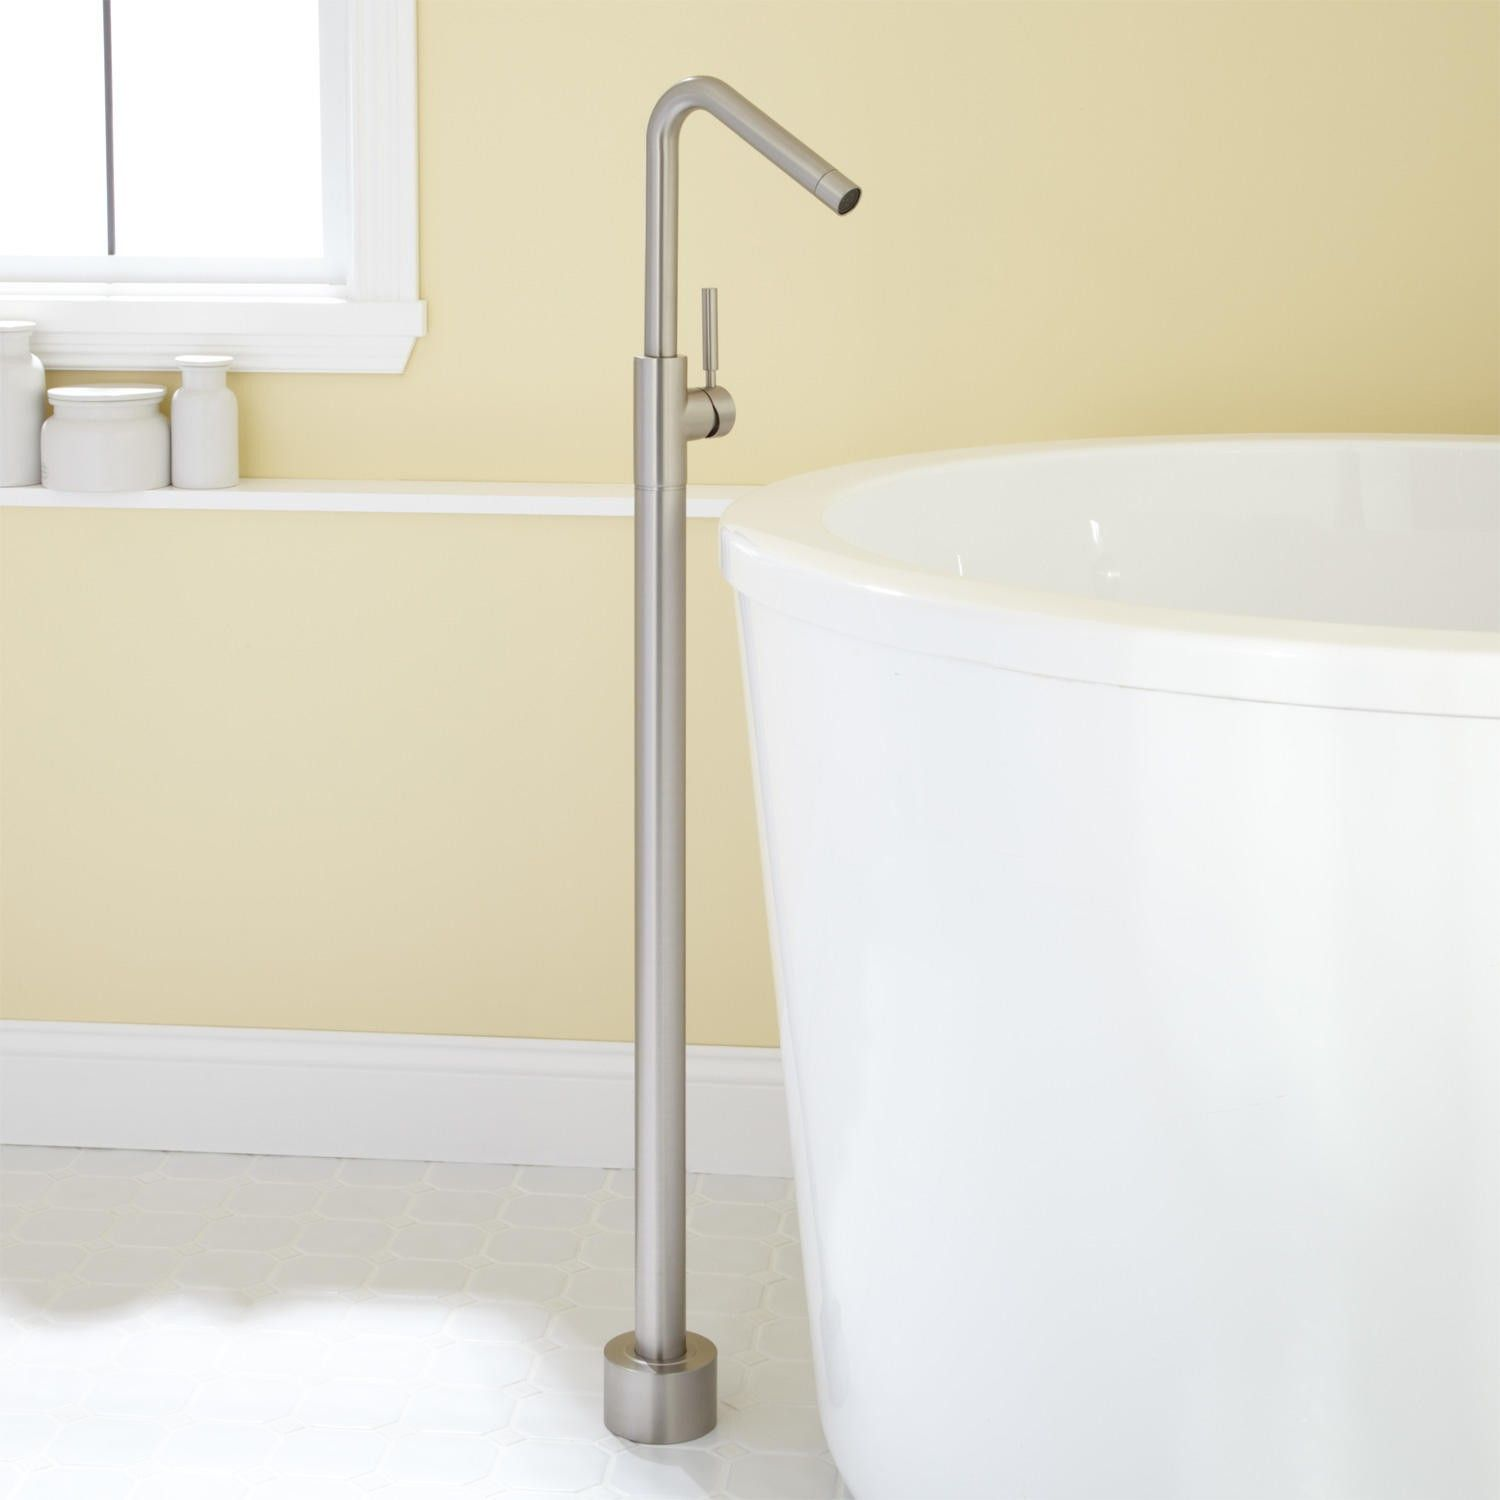 Knight Freestanding Tub Faucet | Freestanding tub, Faucet and Tubs